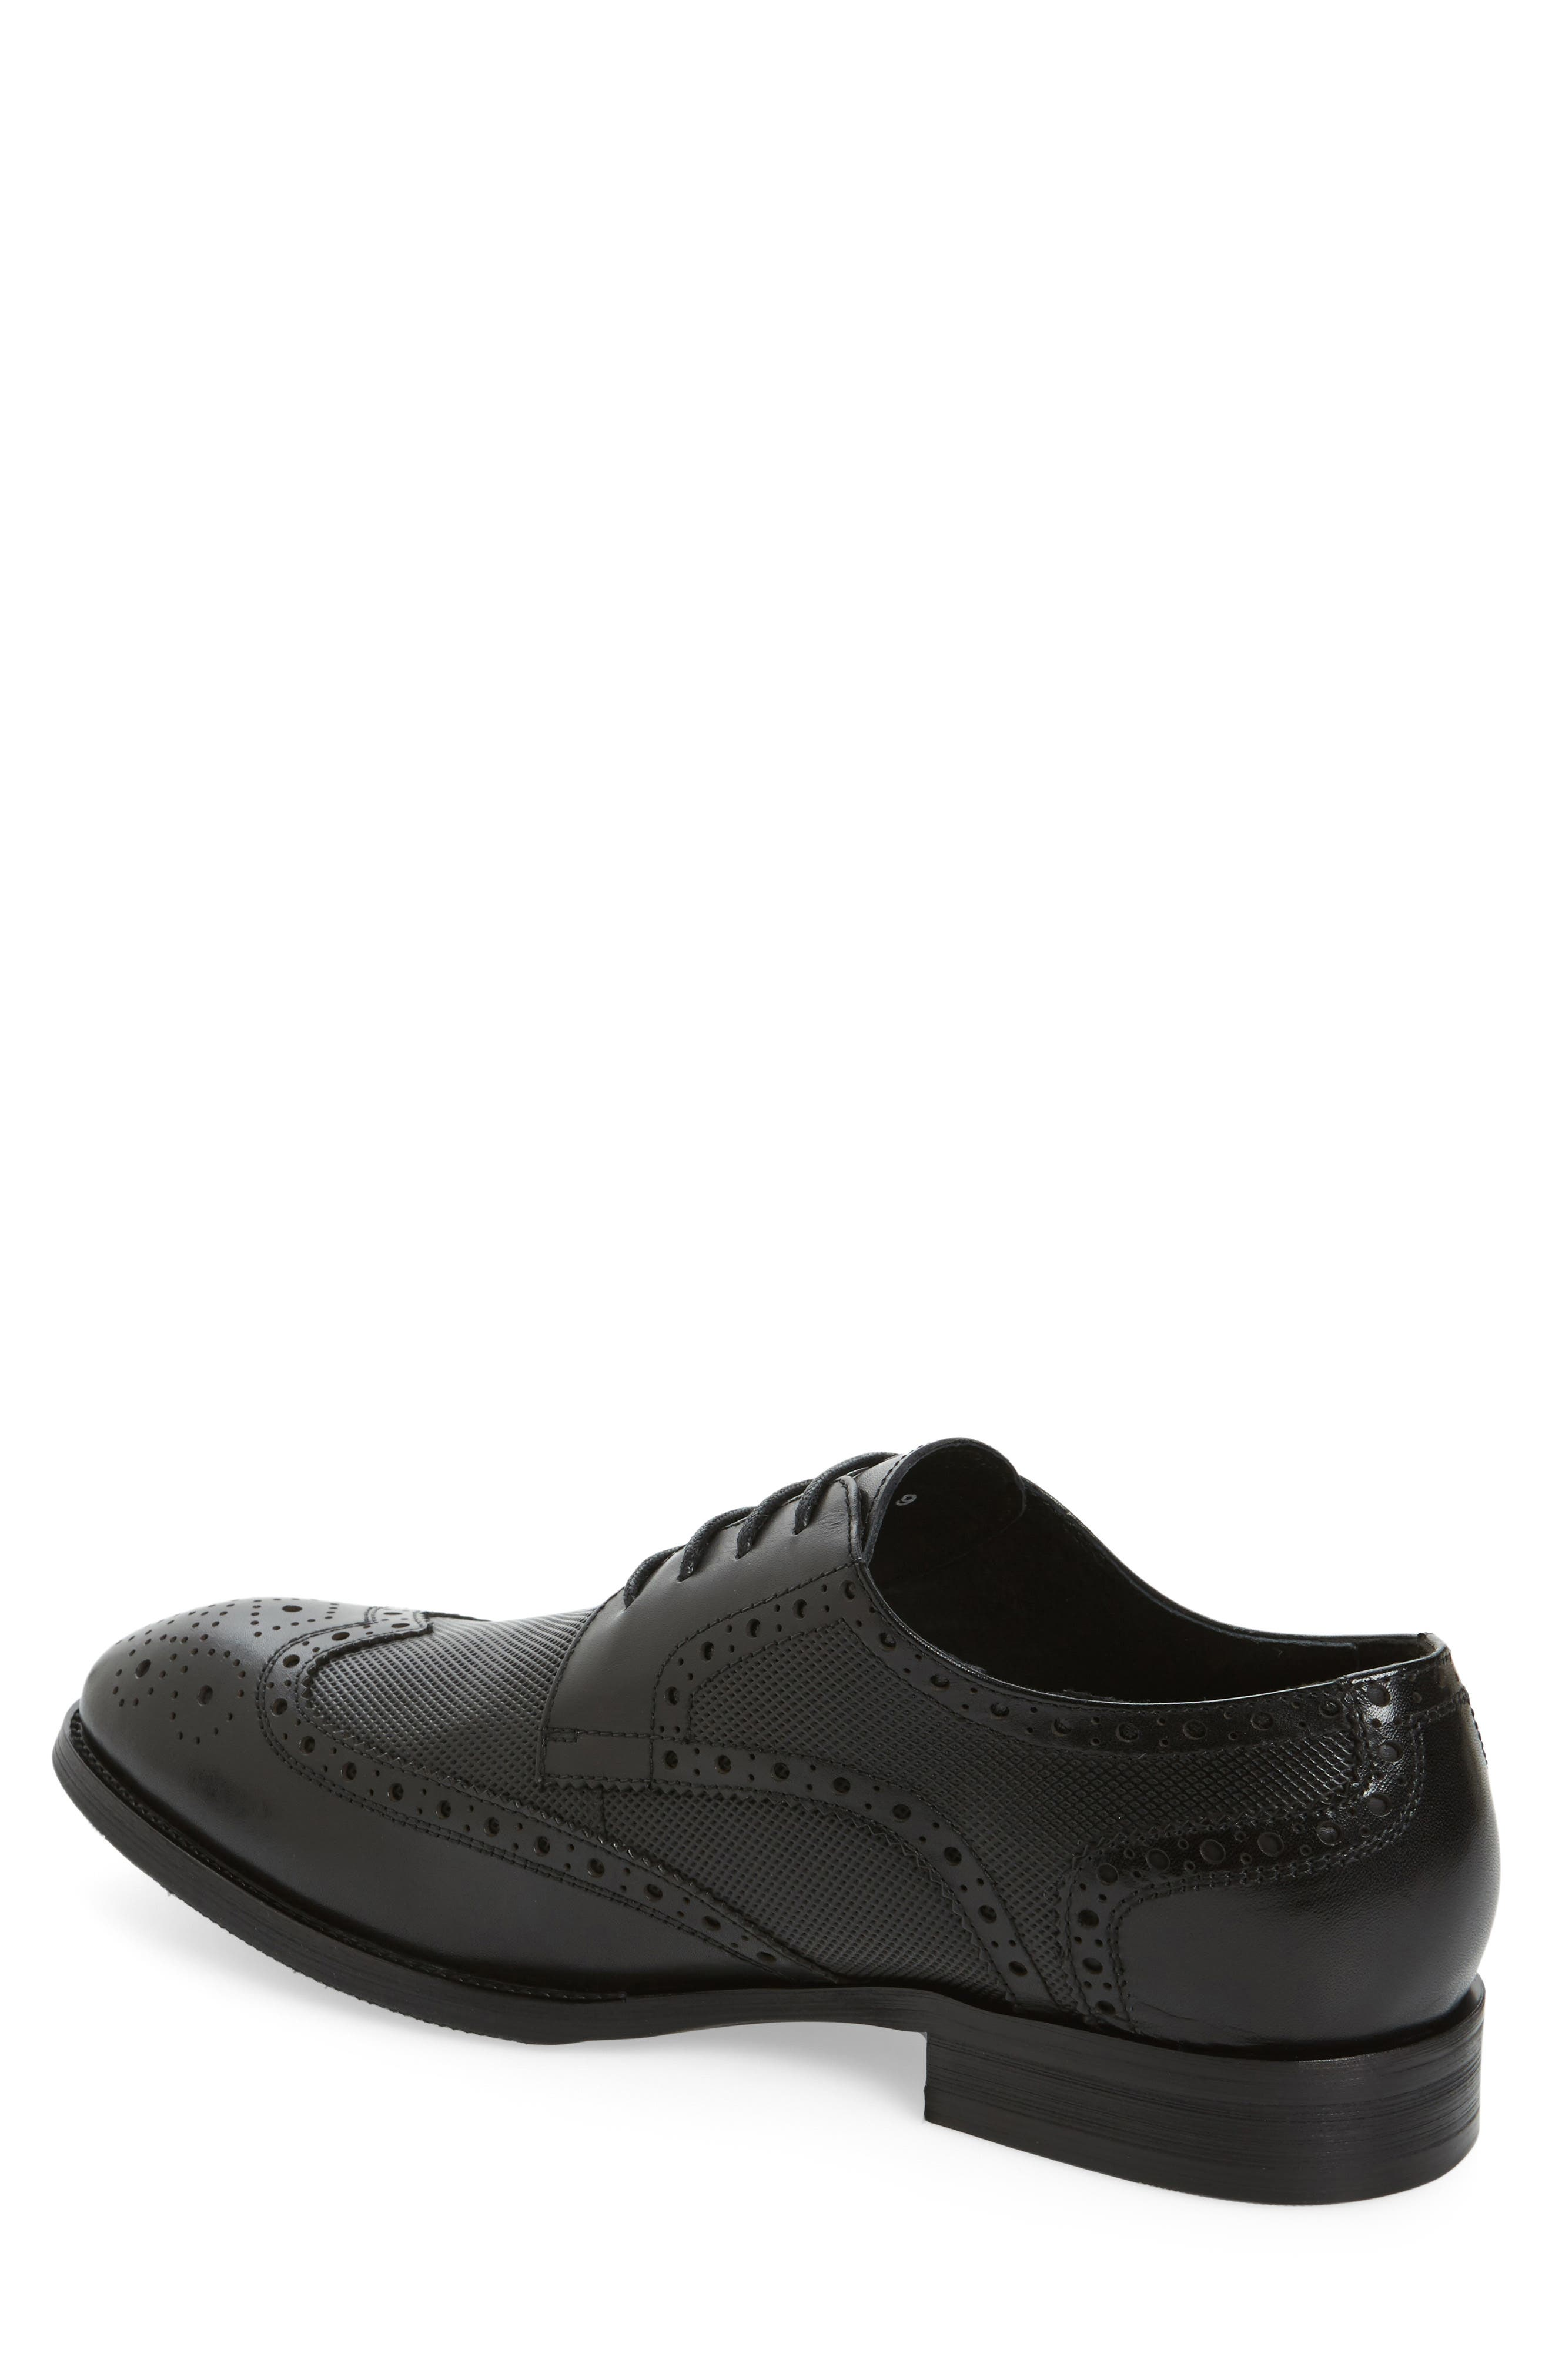 Rossini Wingtip,                             Alternate thumbnail 2, color,                             BLACK LEATHER